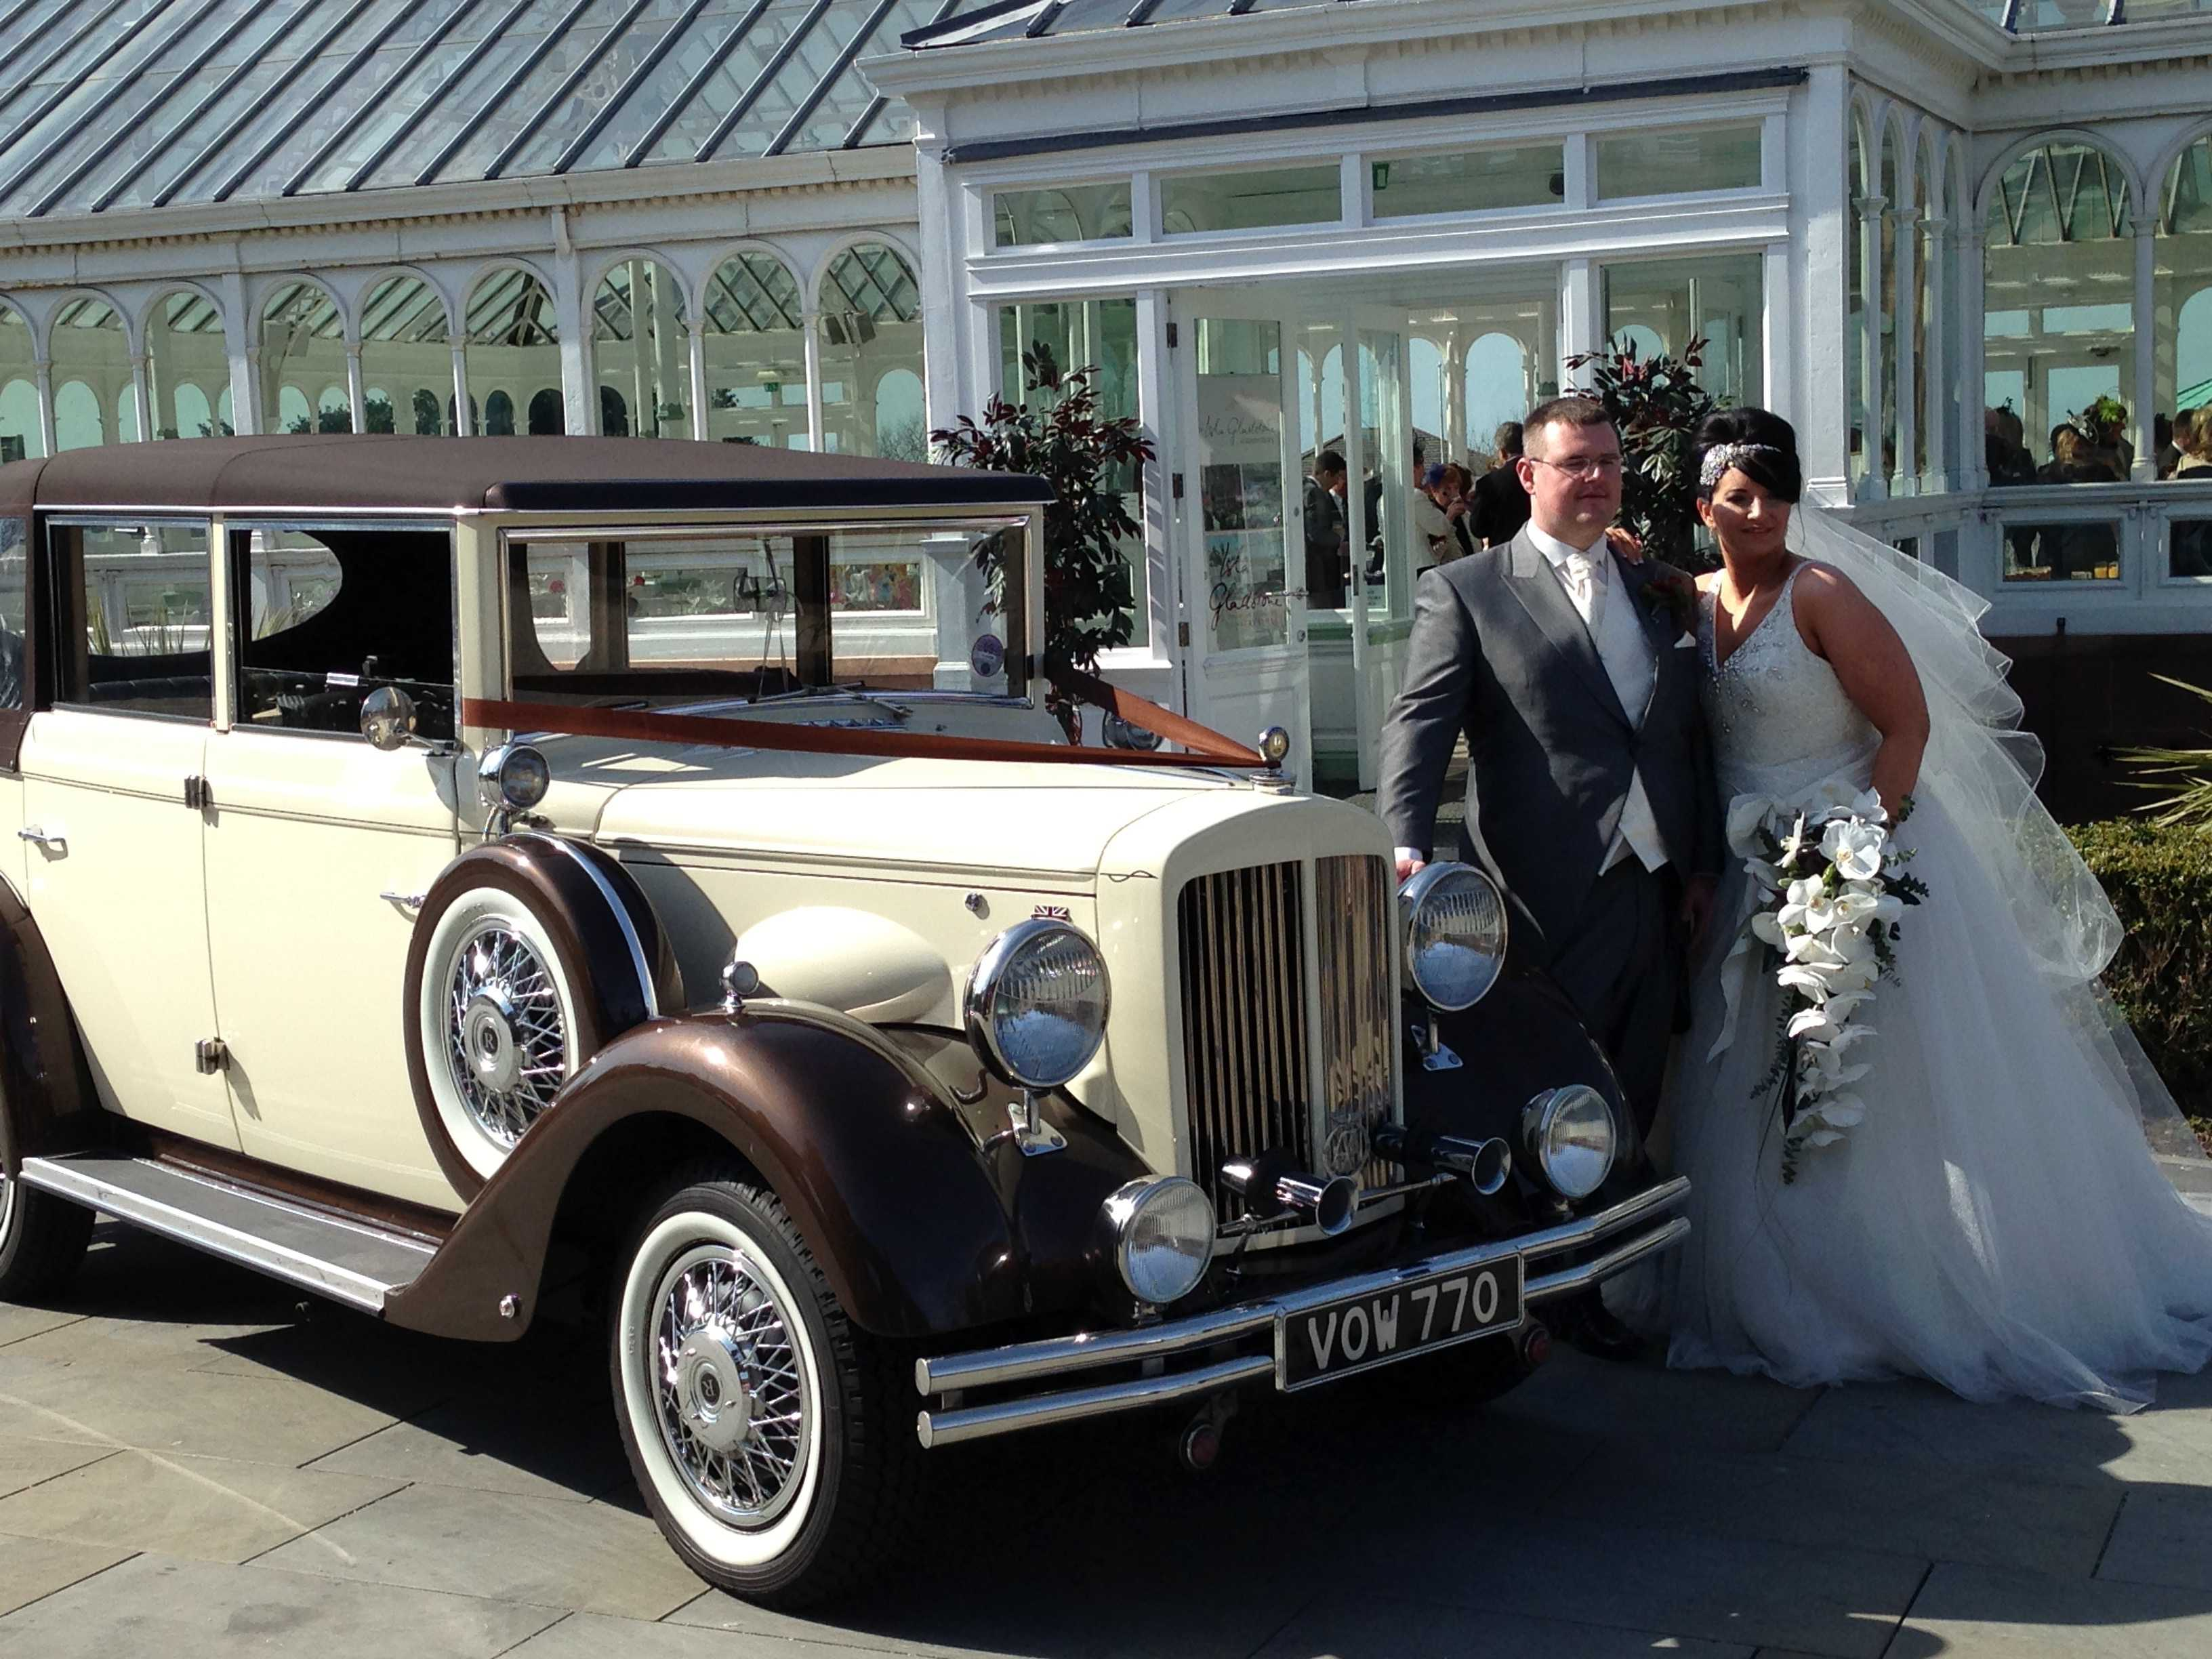 Bride and groom taking a picture with the vintage car